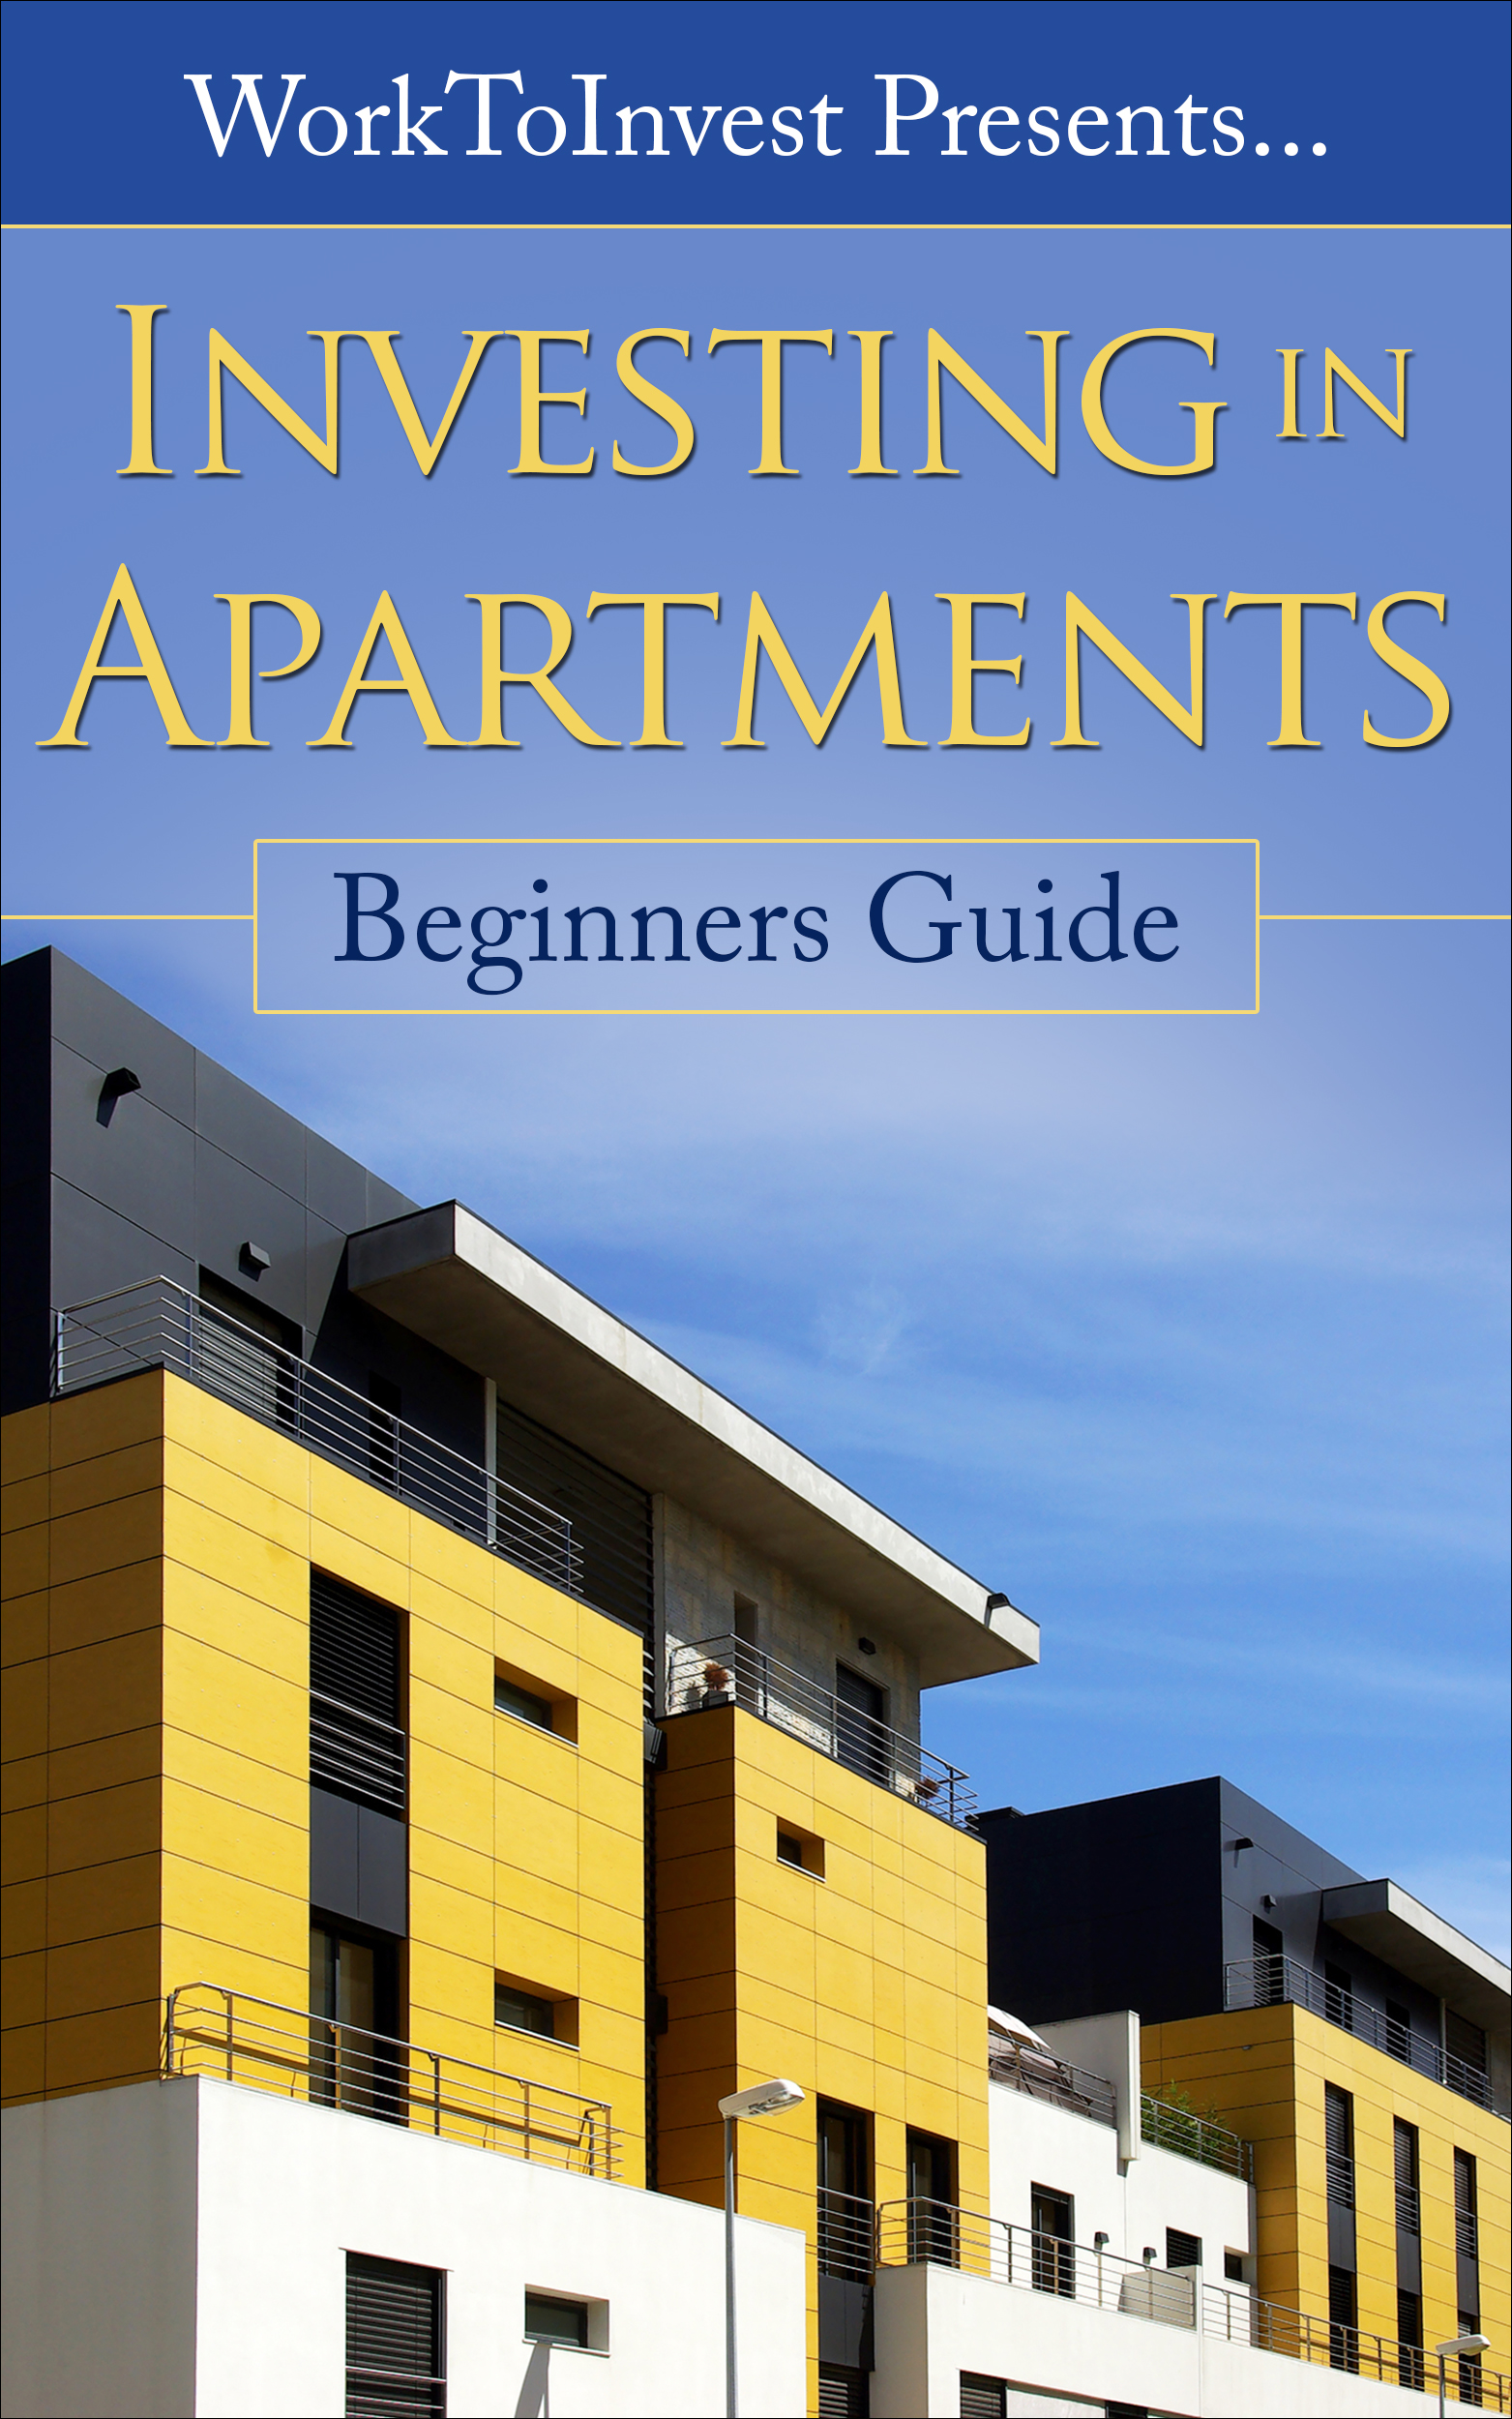 Investing in Apartments – A beginners guide